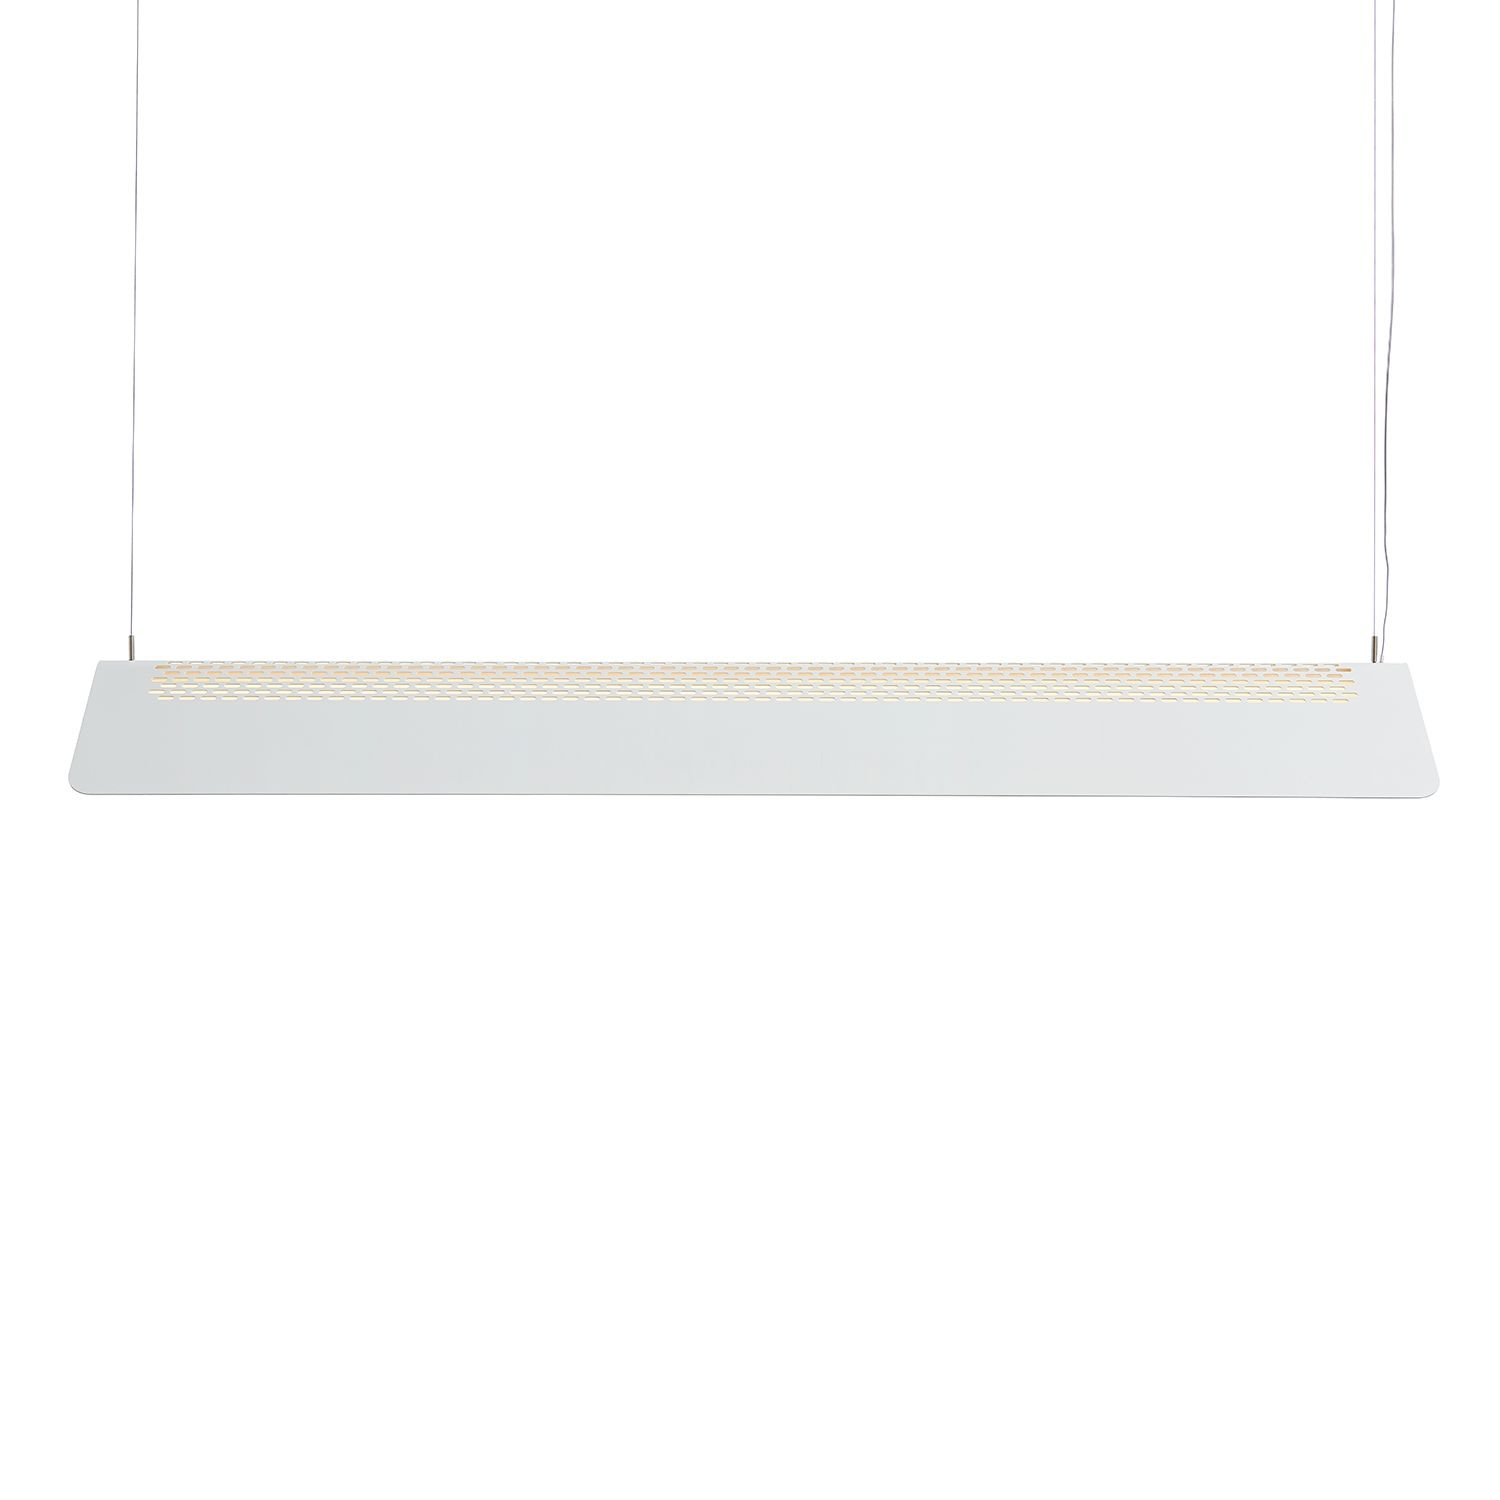 Flybye hanglamp Hollands Licht wit